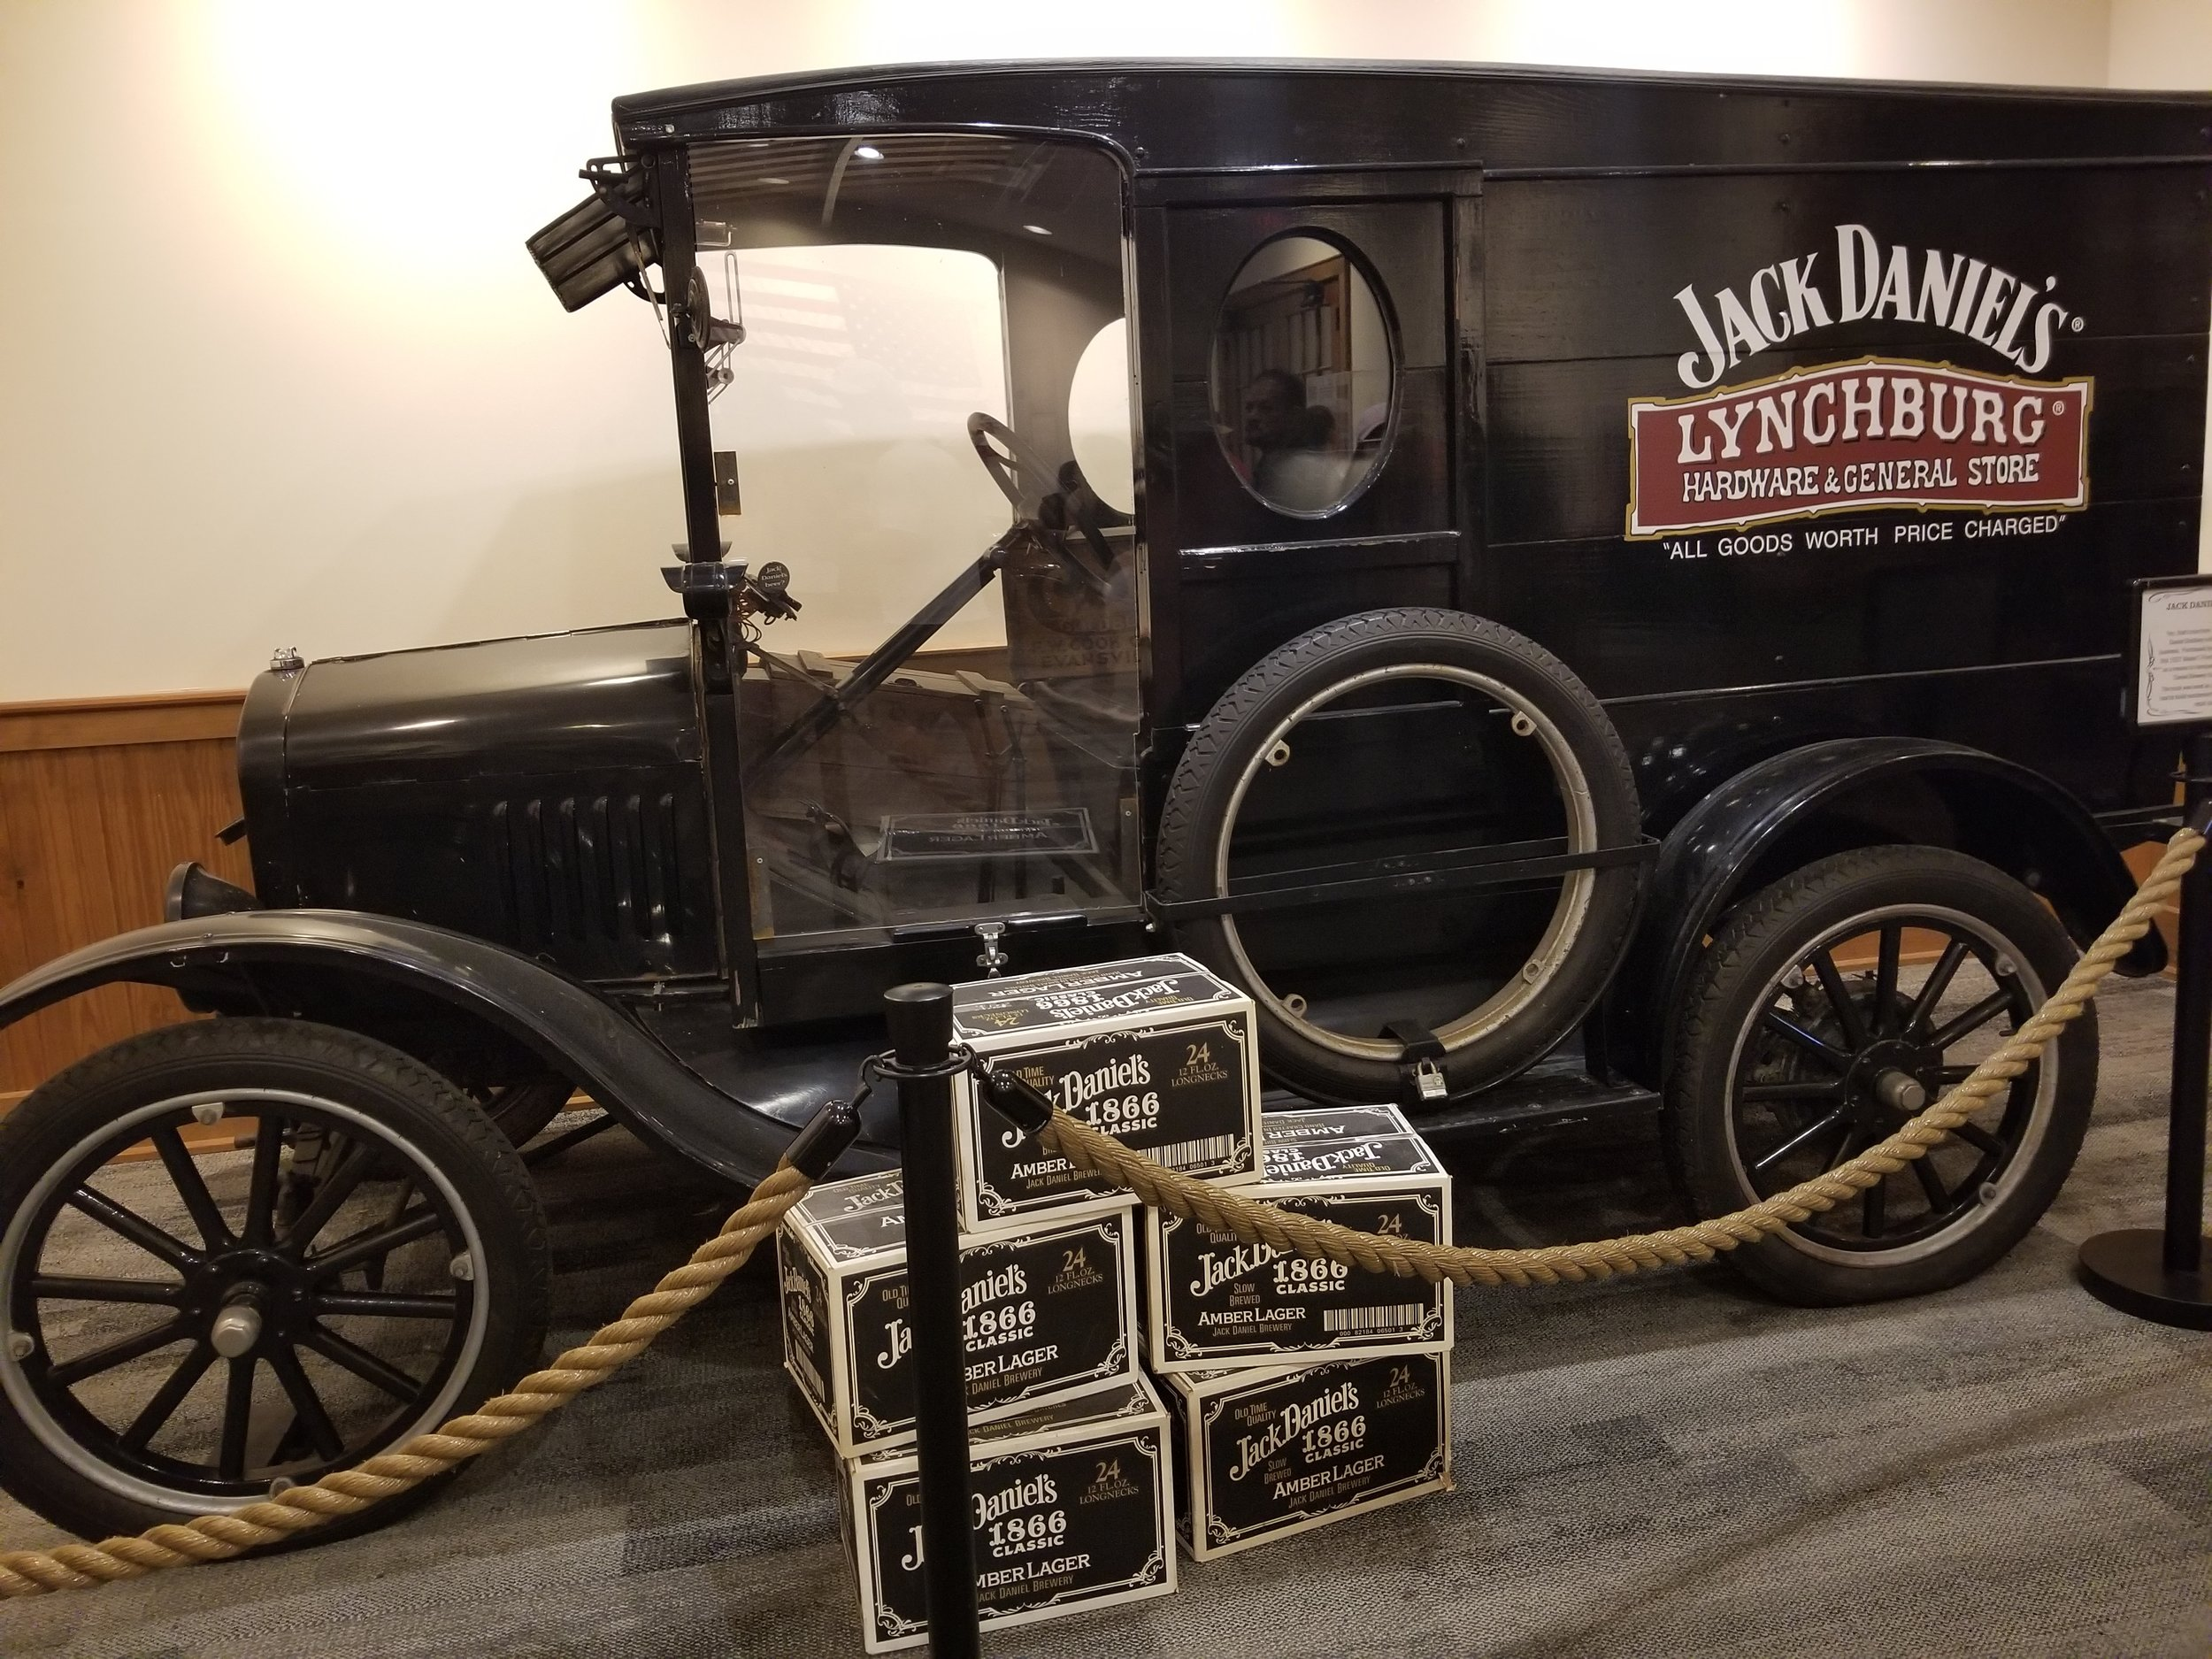 Jack Daniel's used to also brew beer and this was a delivery truck back in the day.